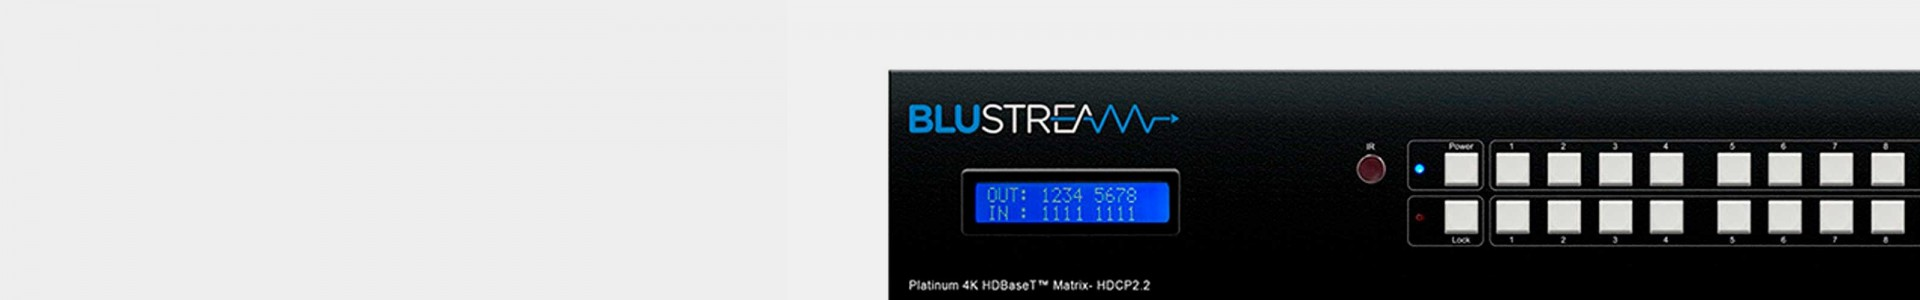 Blustream at Avacab - Special price for installers and integrators